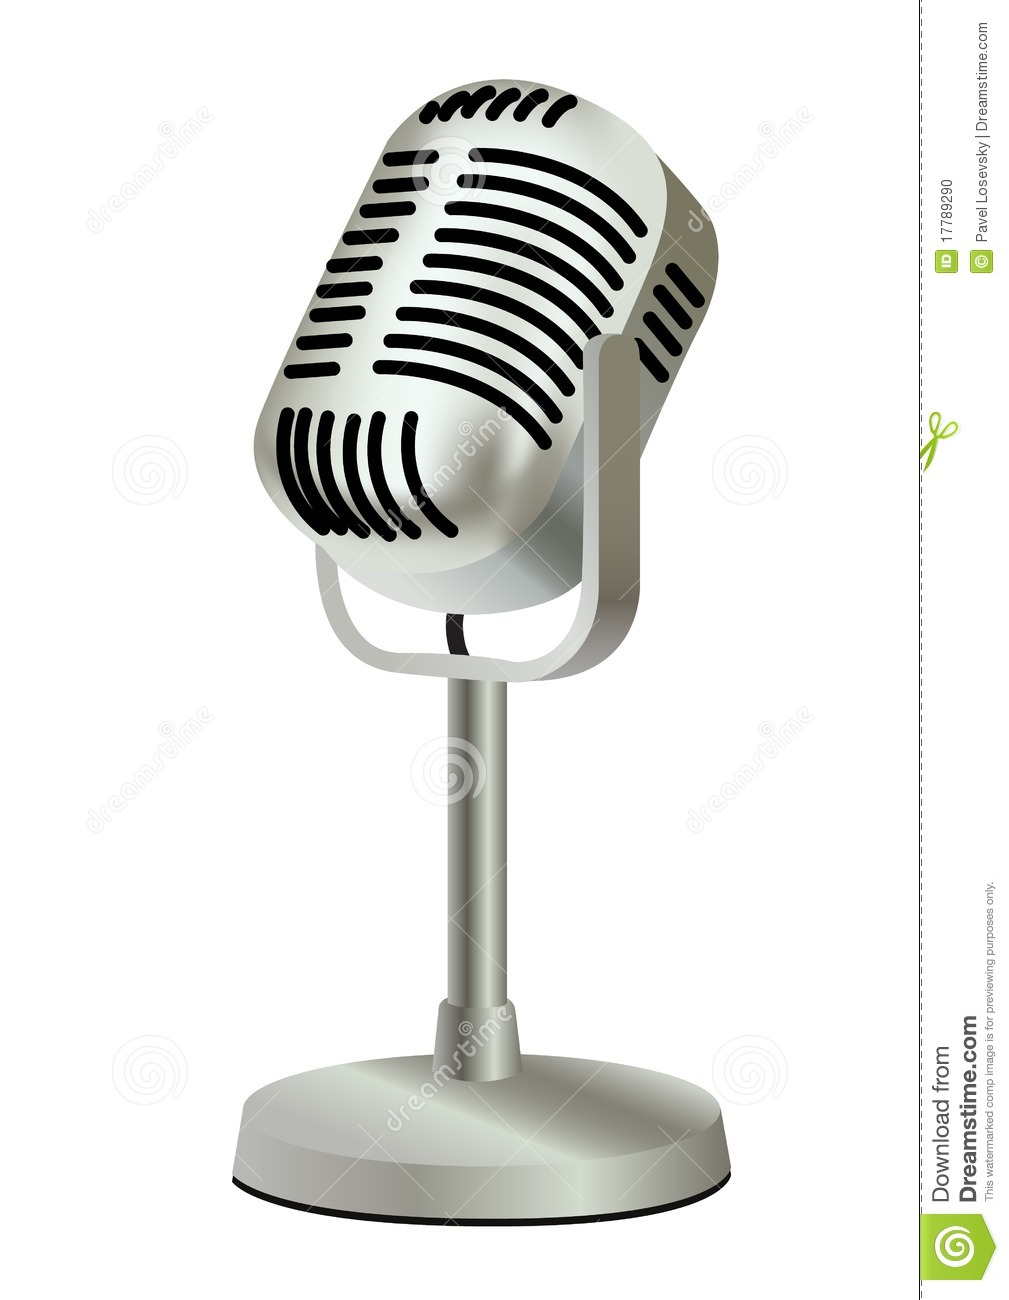 Radio Microphone Wallpaper | Clipart Panda - Free Clipart ...